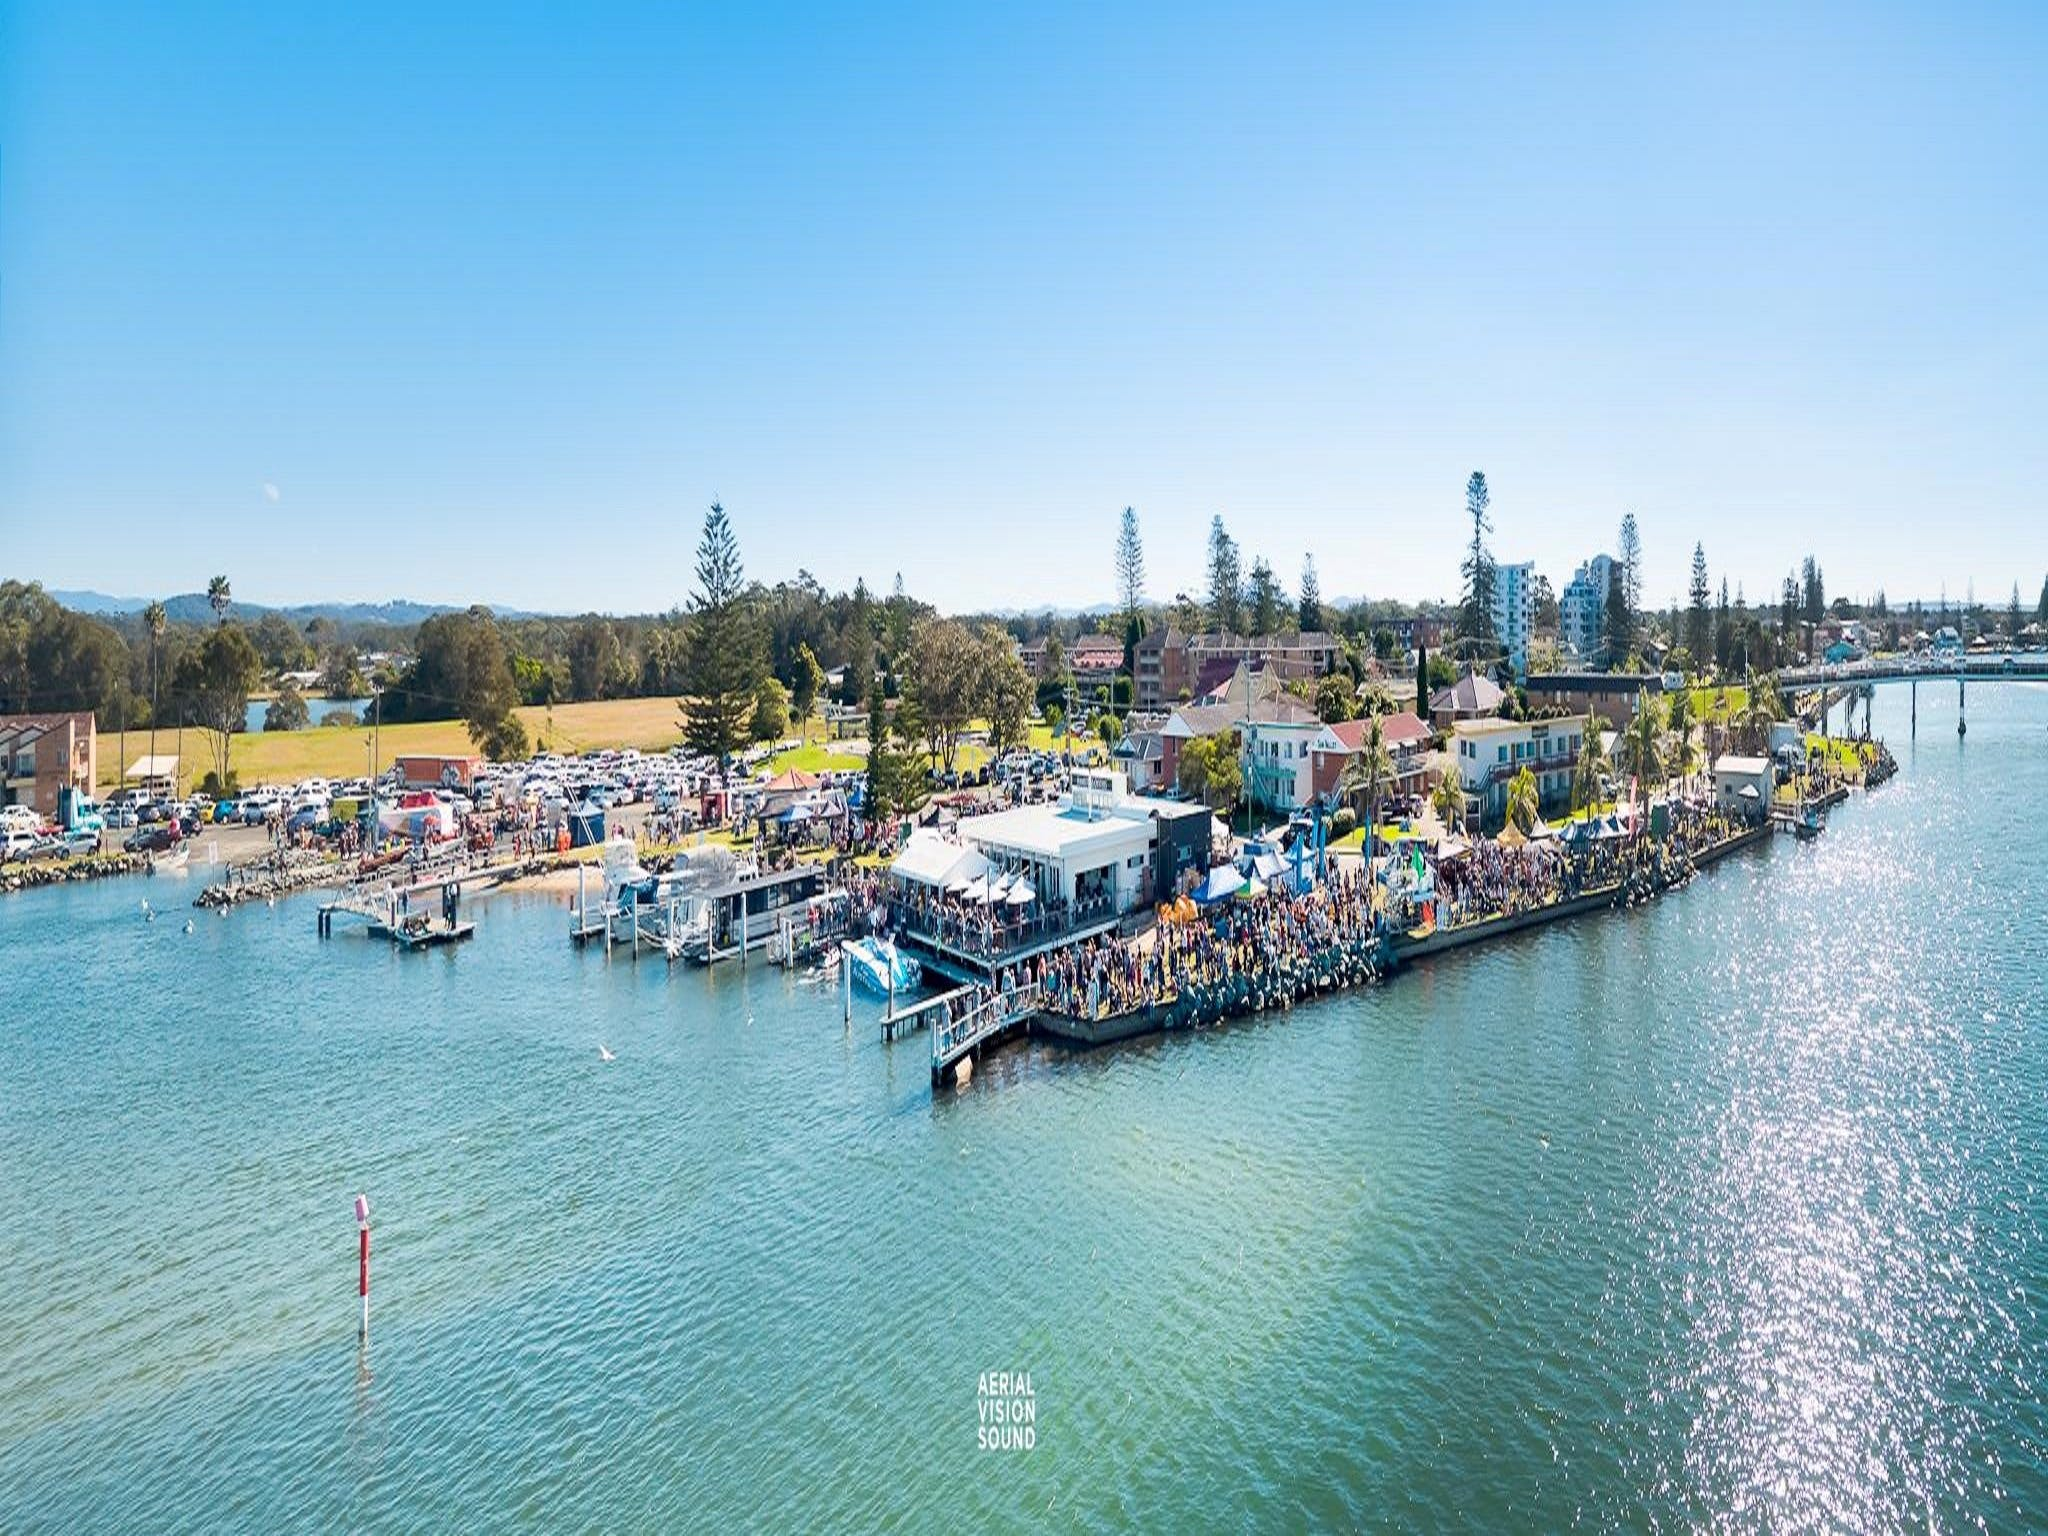 Fred Williams Aquatic Festival - Tourism Brisbane